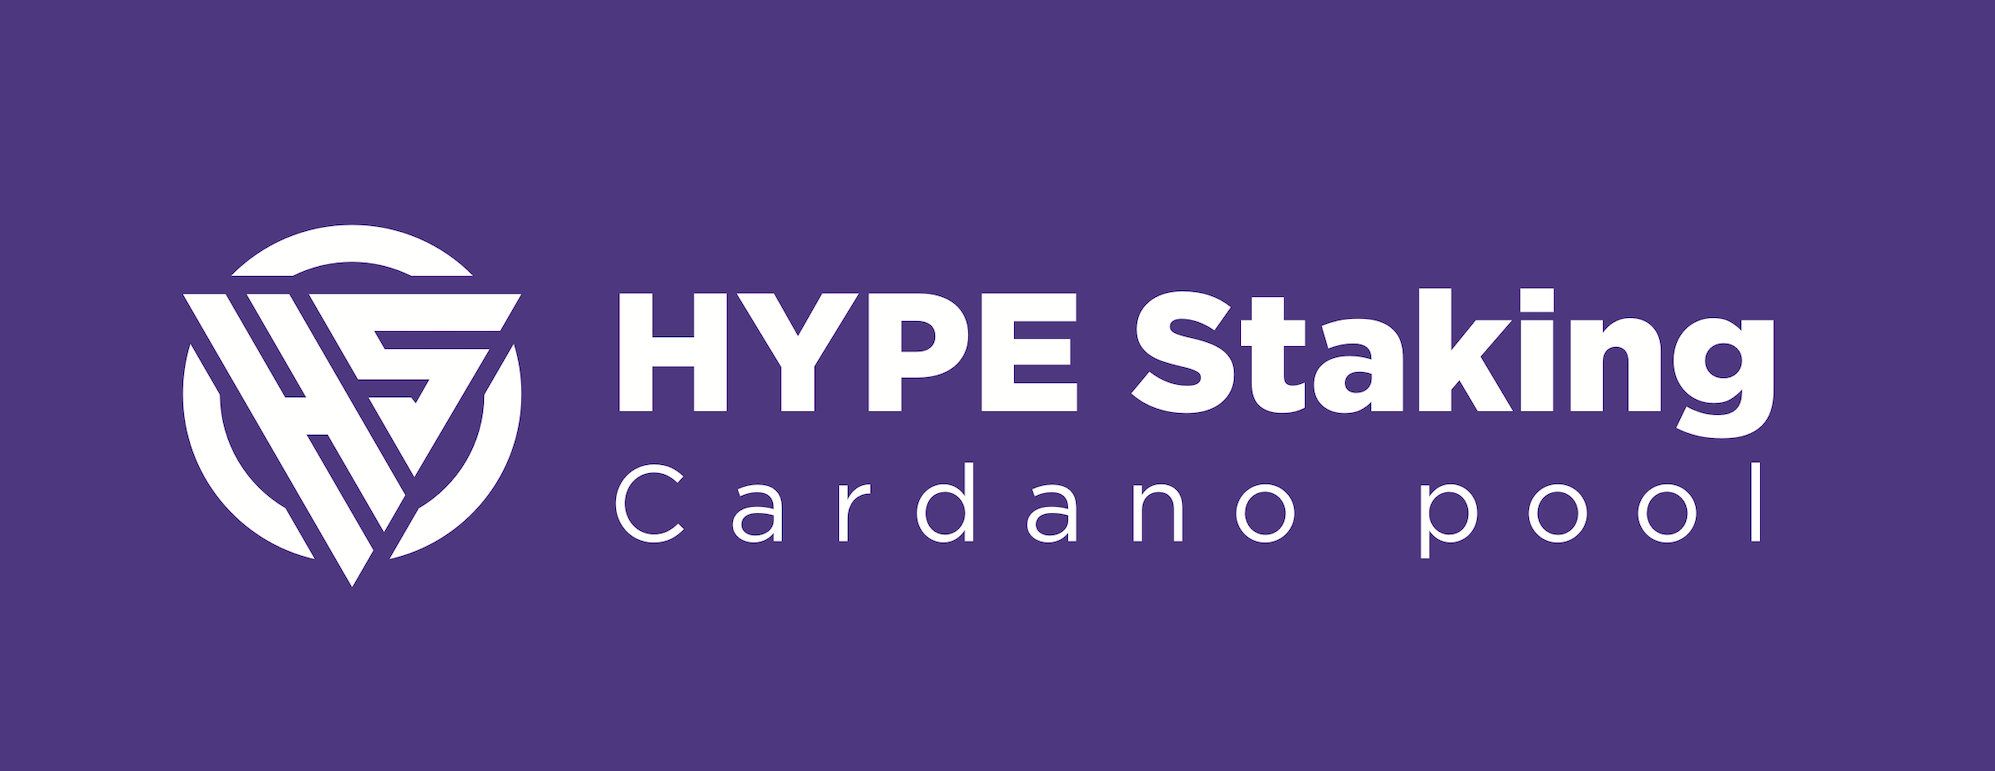 Hype Staking